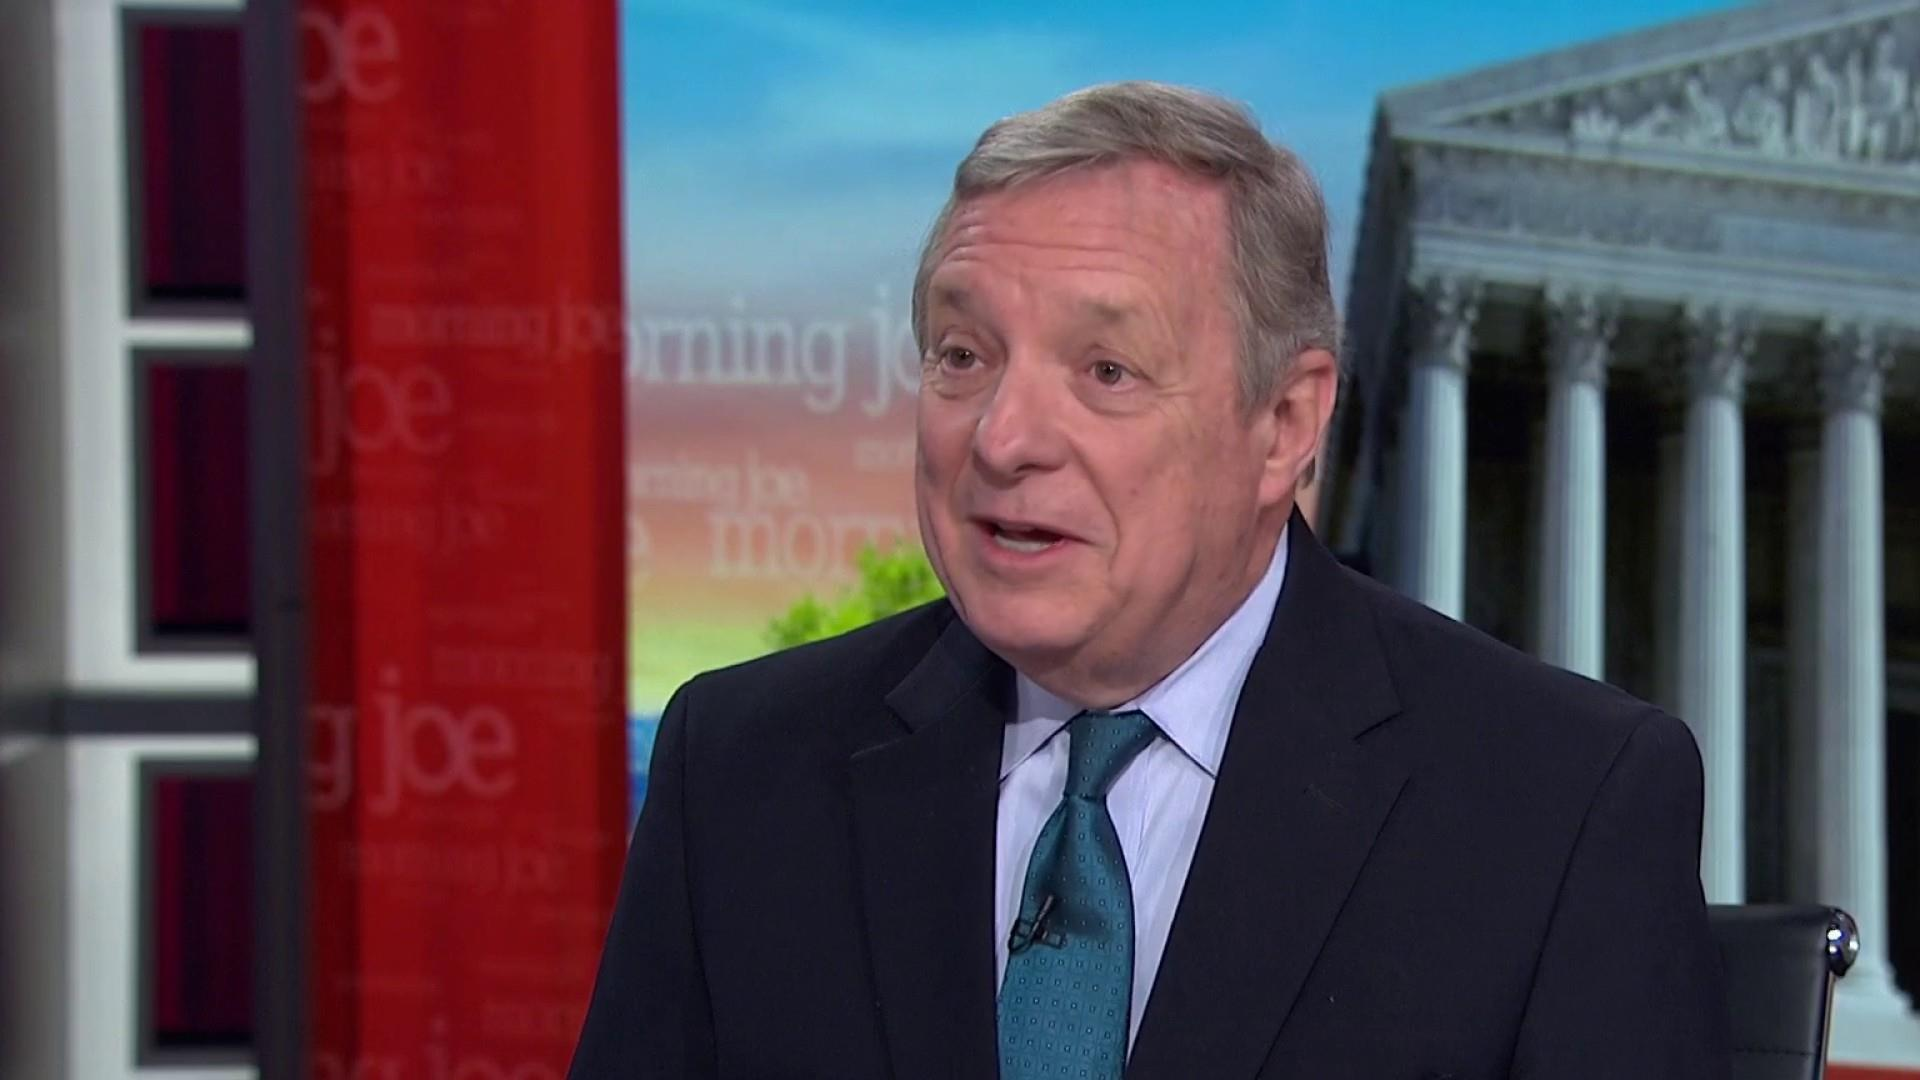 Sen. Durbin: Barr should be accountable to committees